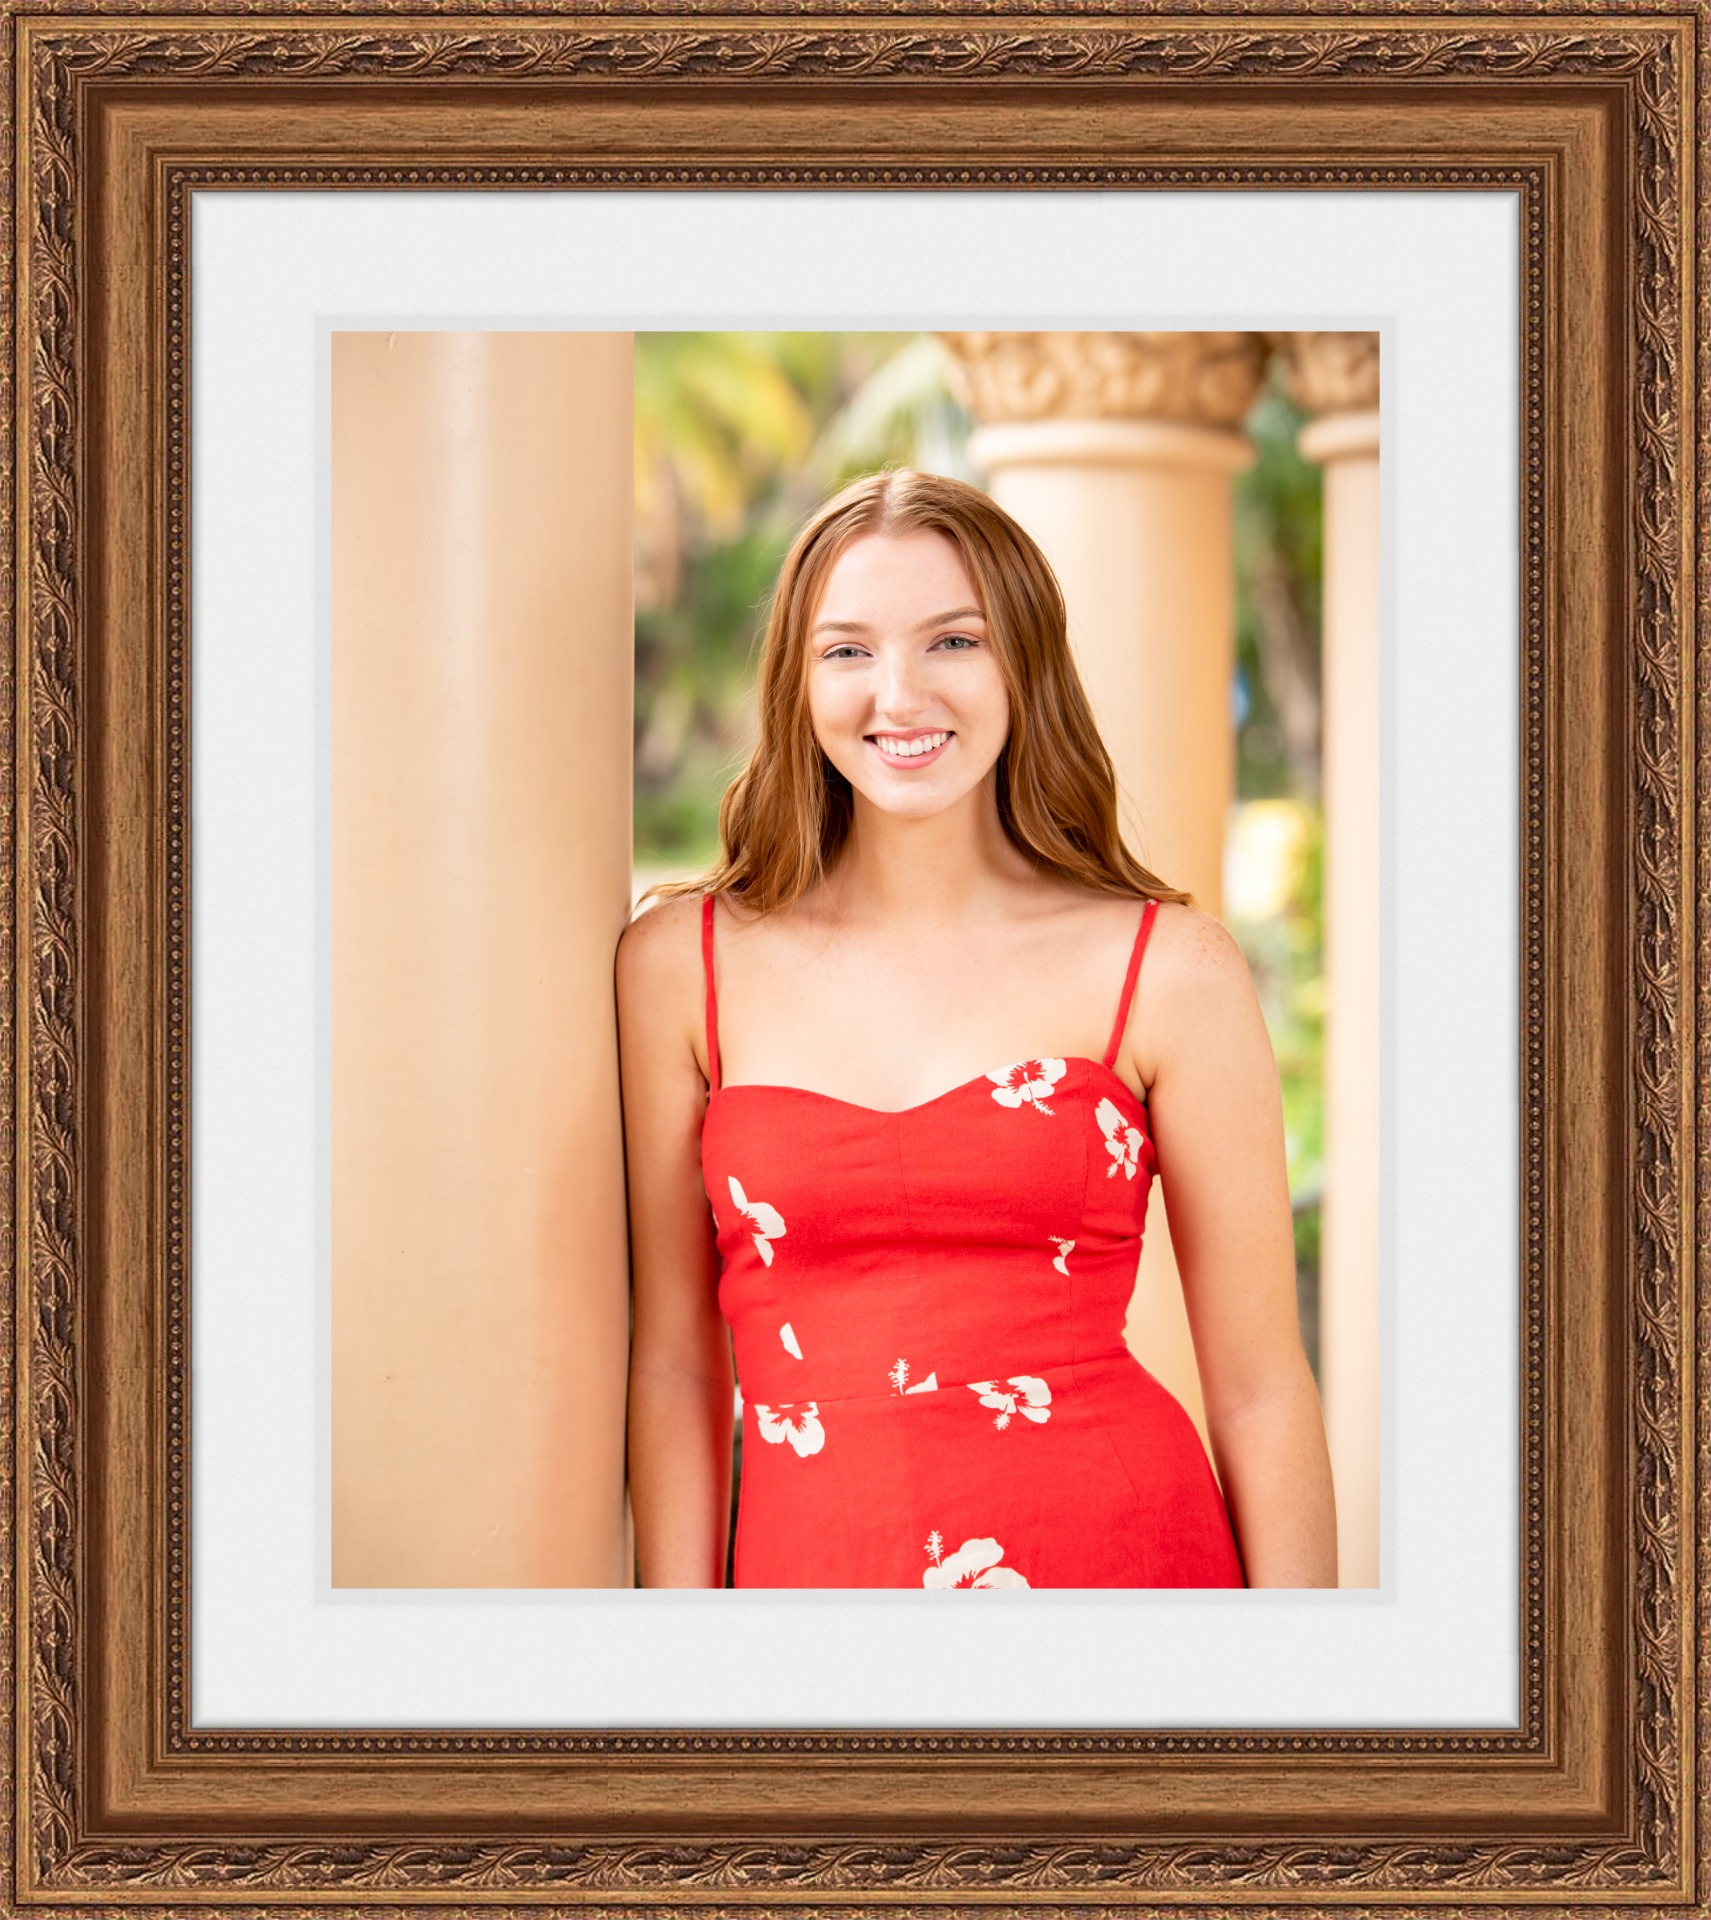 Gift Portraits - One 8x10 Framed Portrait$190* eaFree domestic shipping